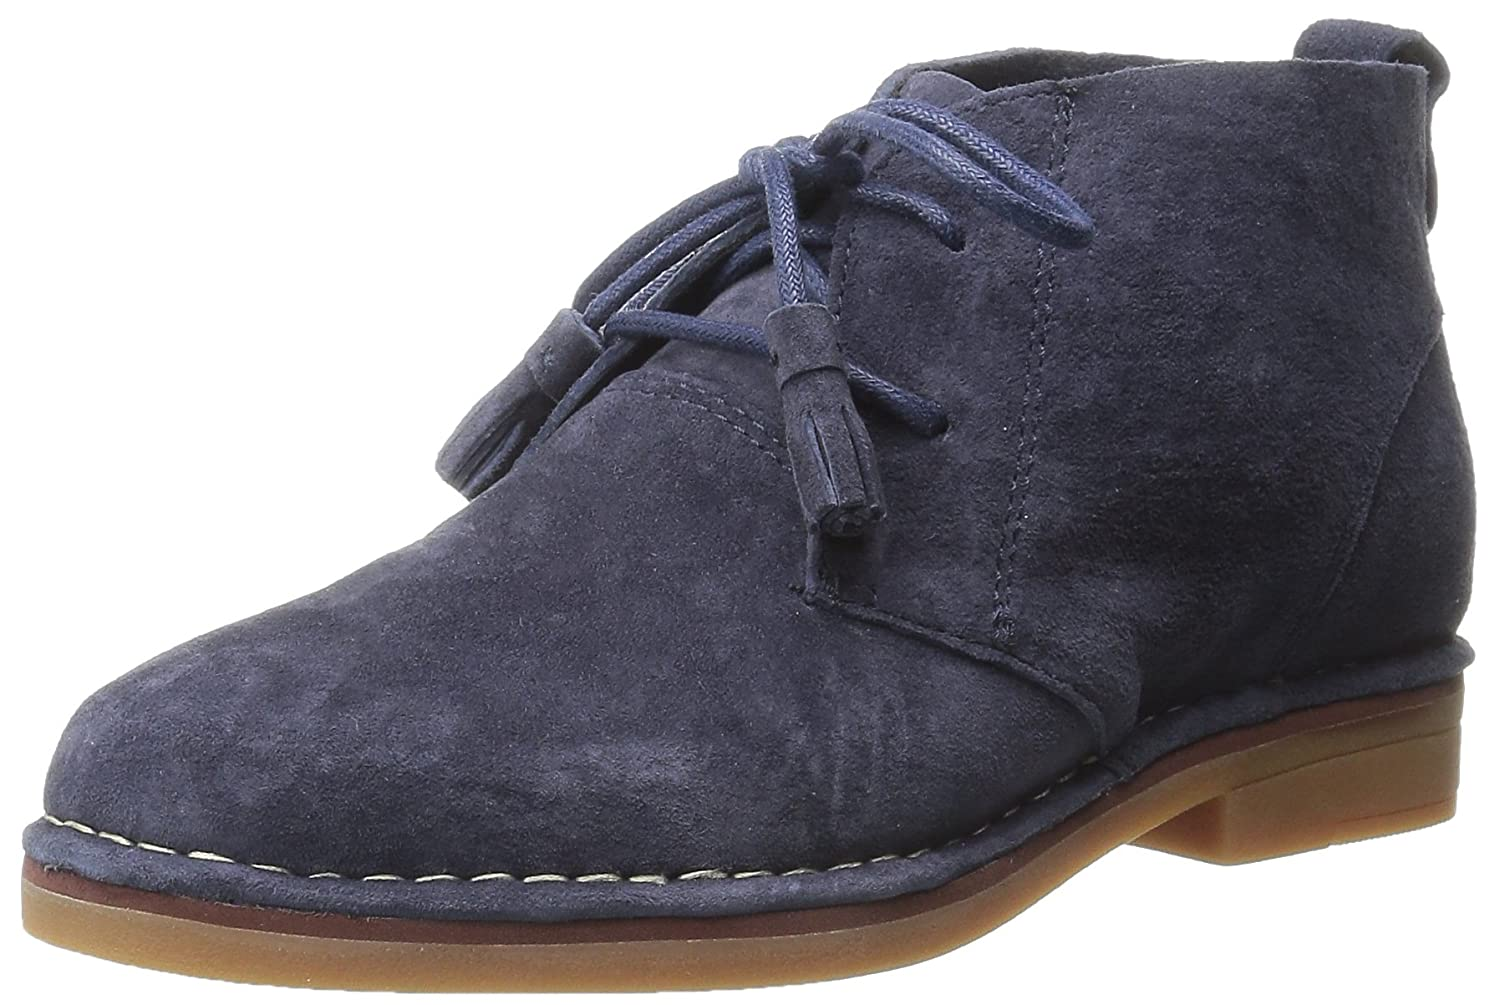 Hush Puppies Women's Cyra Catelyn Boot B0059WKYXM 8.5 B(M) US|Navy